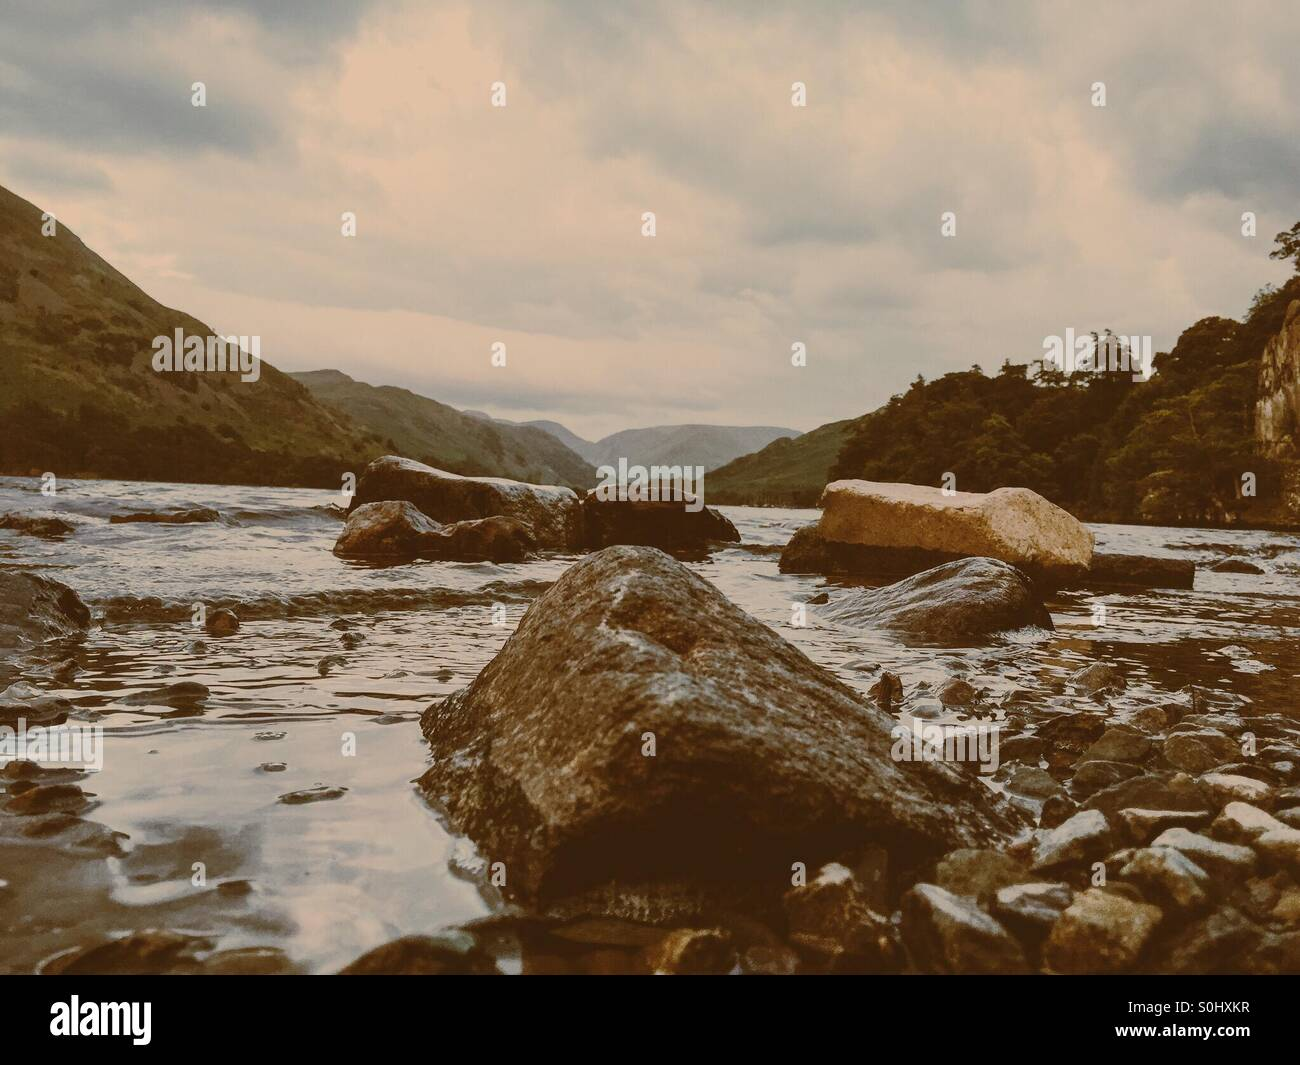 Rocks on the shoreline of Ullswater lake in the late evening light - Stock Image